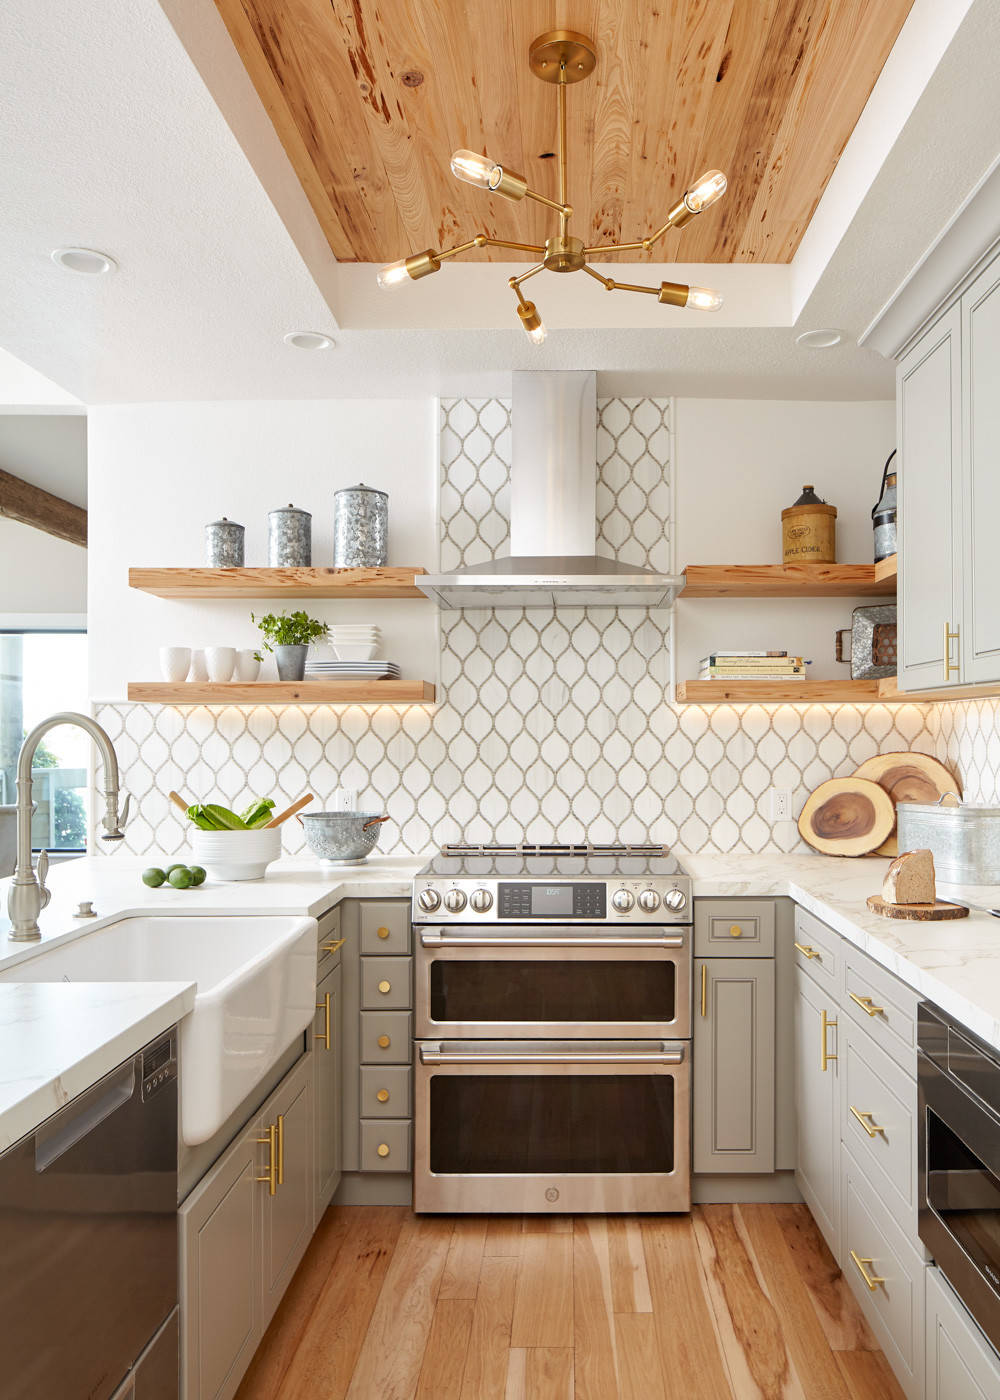 75 Beautiful Kitchen With A Farmhouse Sink And Marble Countertops Pictures Ideas December 2020 Houzz